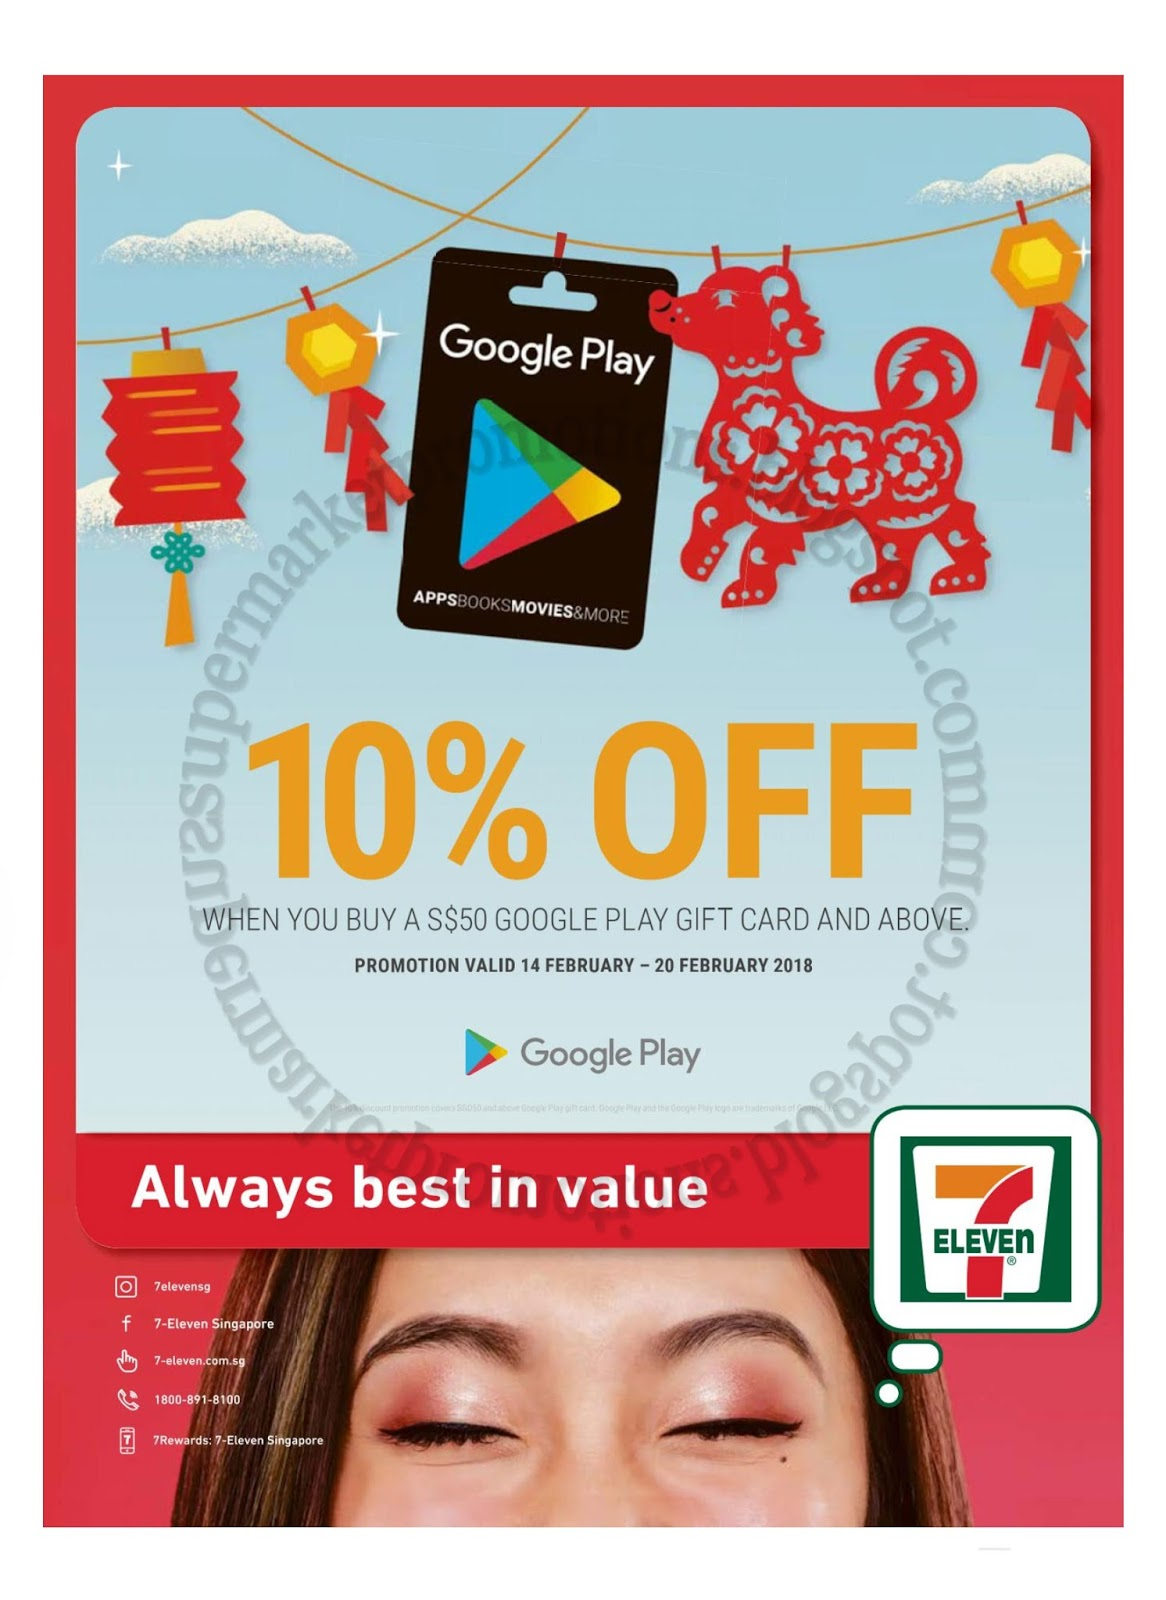 7 Eleven Google Play Gift Card Promotion 14 20 February 2018